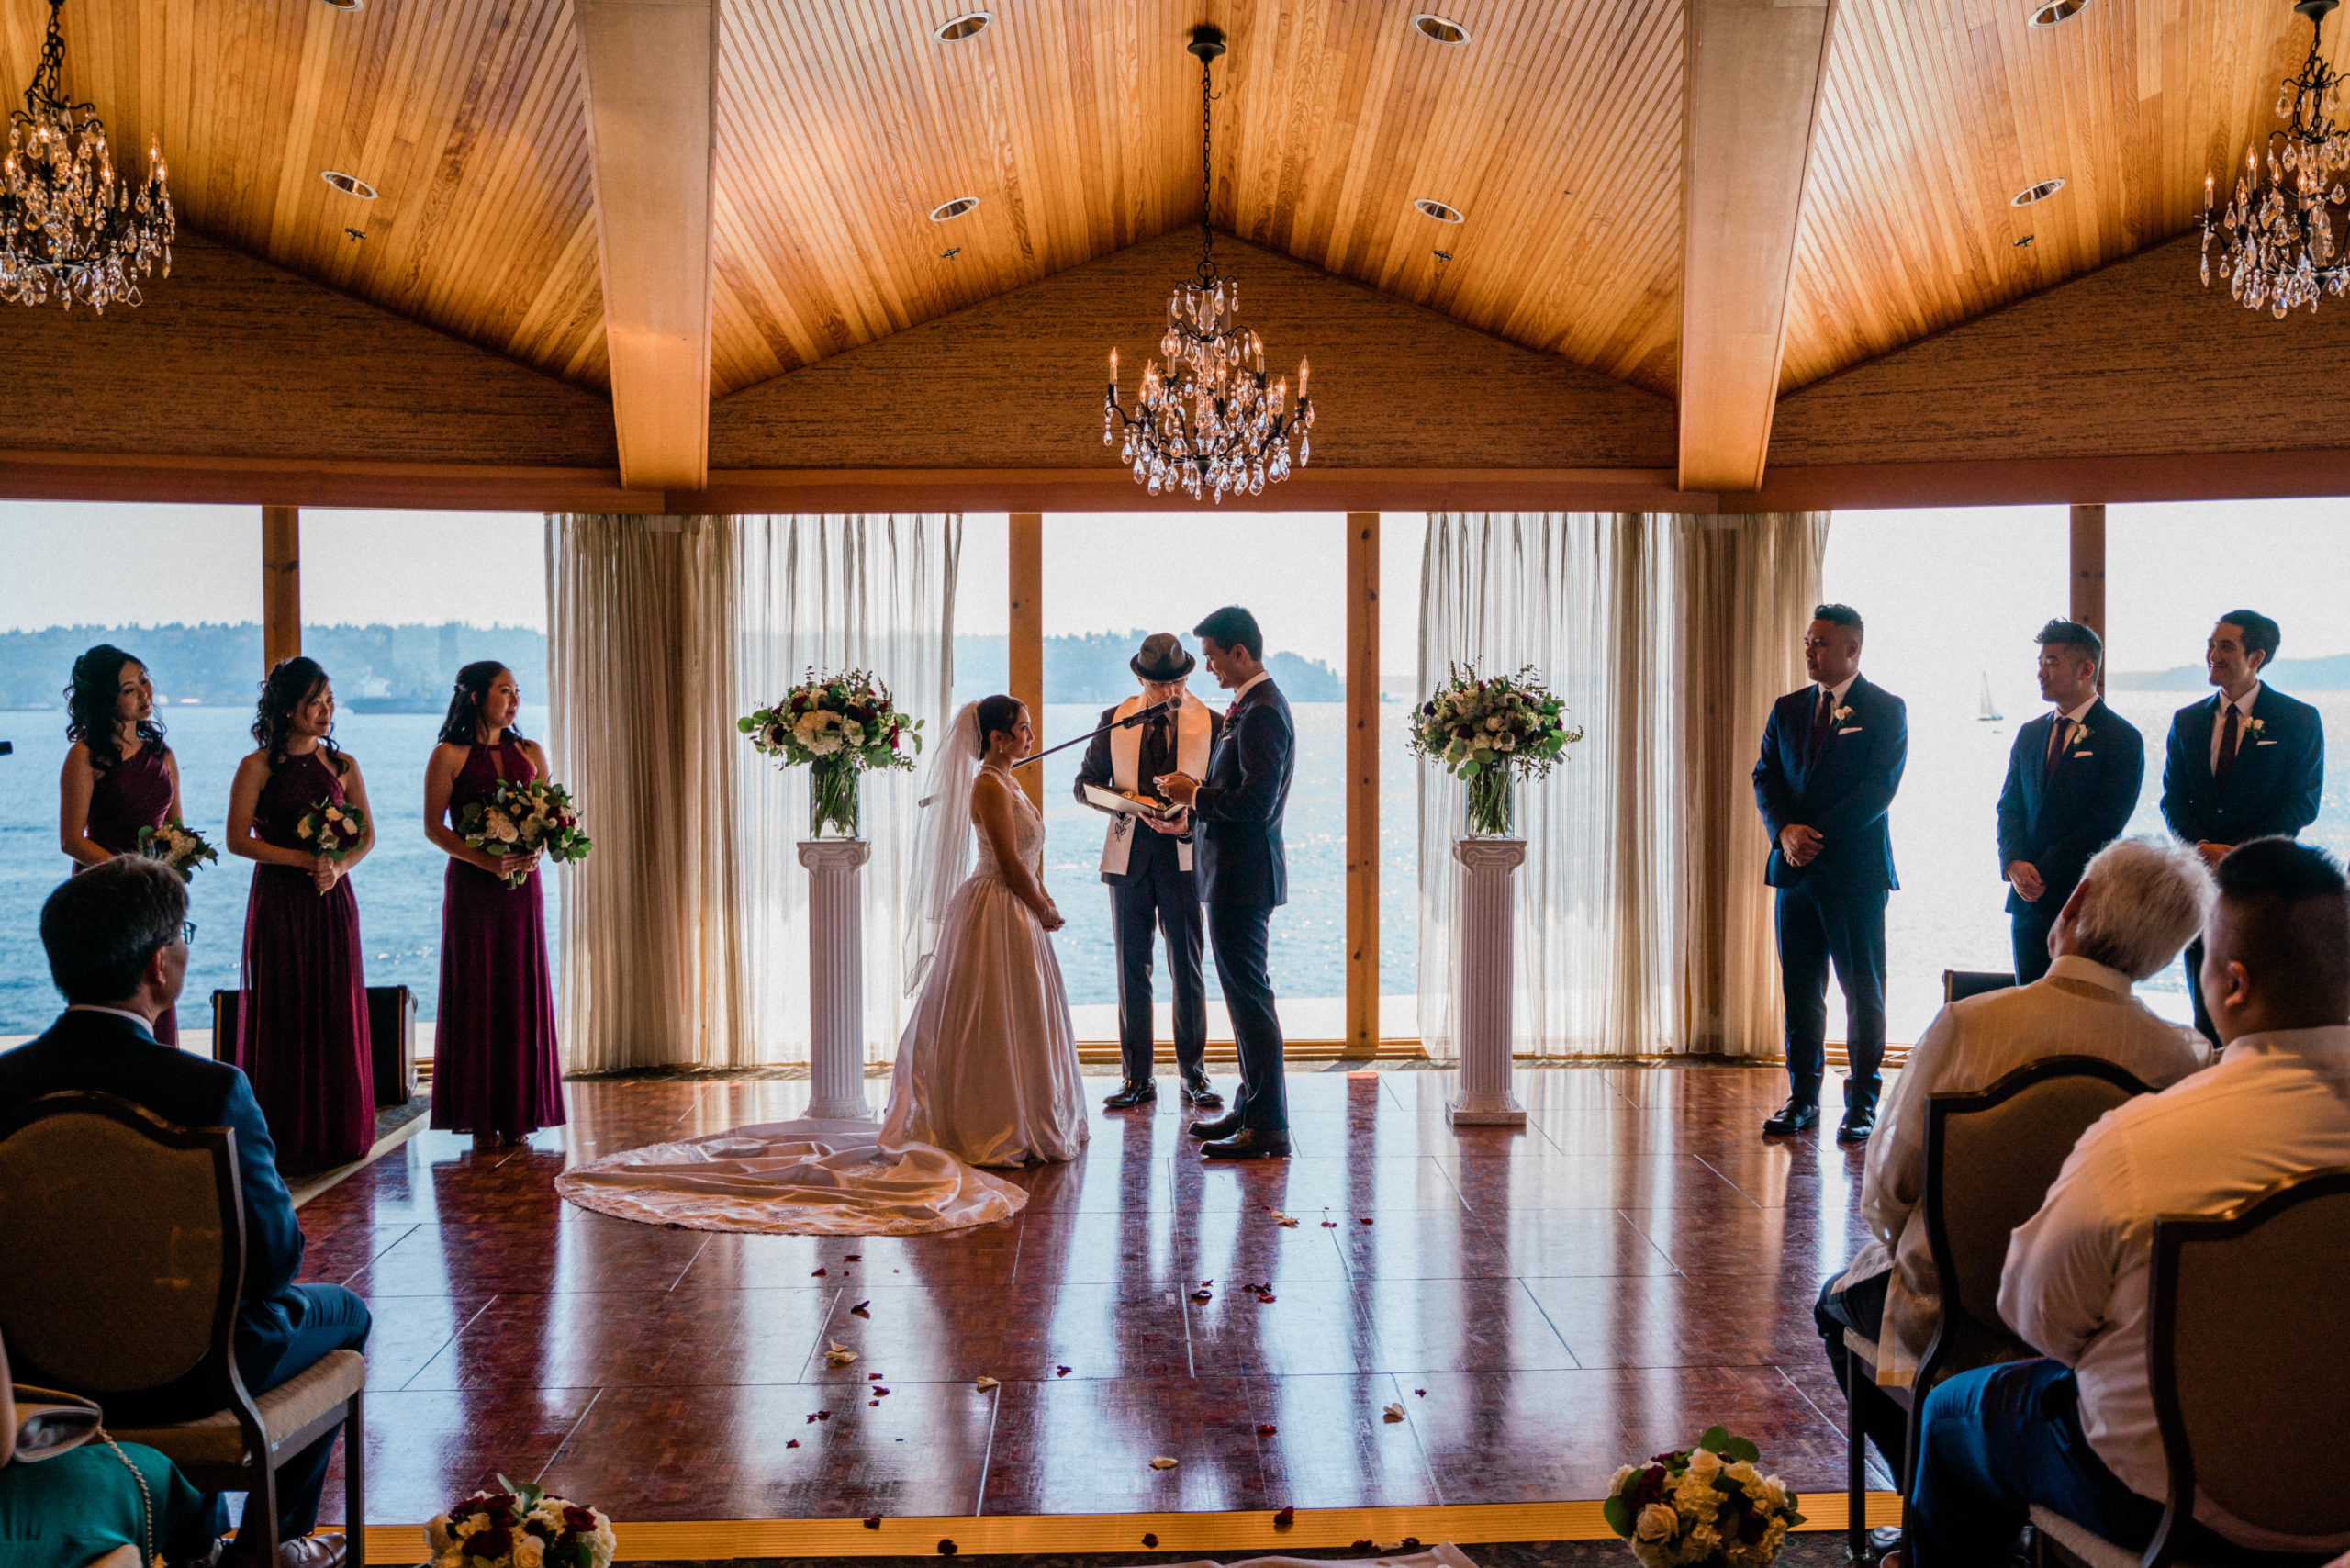 edgewater hotel wedding ceremony ballroom with huge windows overlooking Puget Sound with olympic mountain views